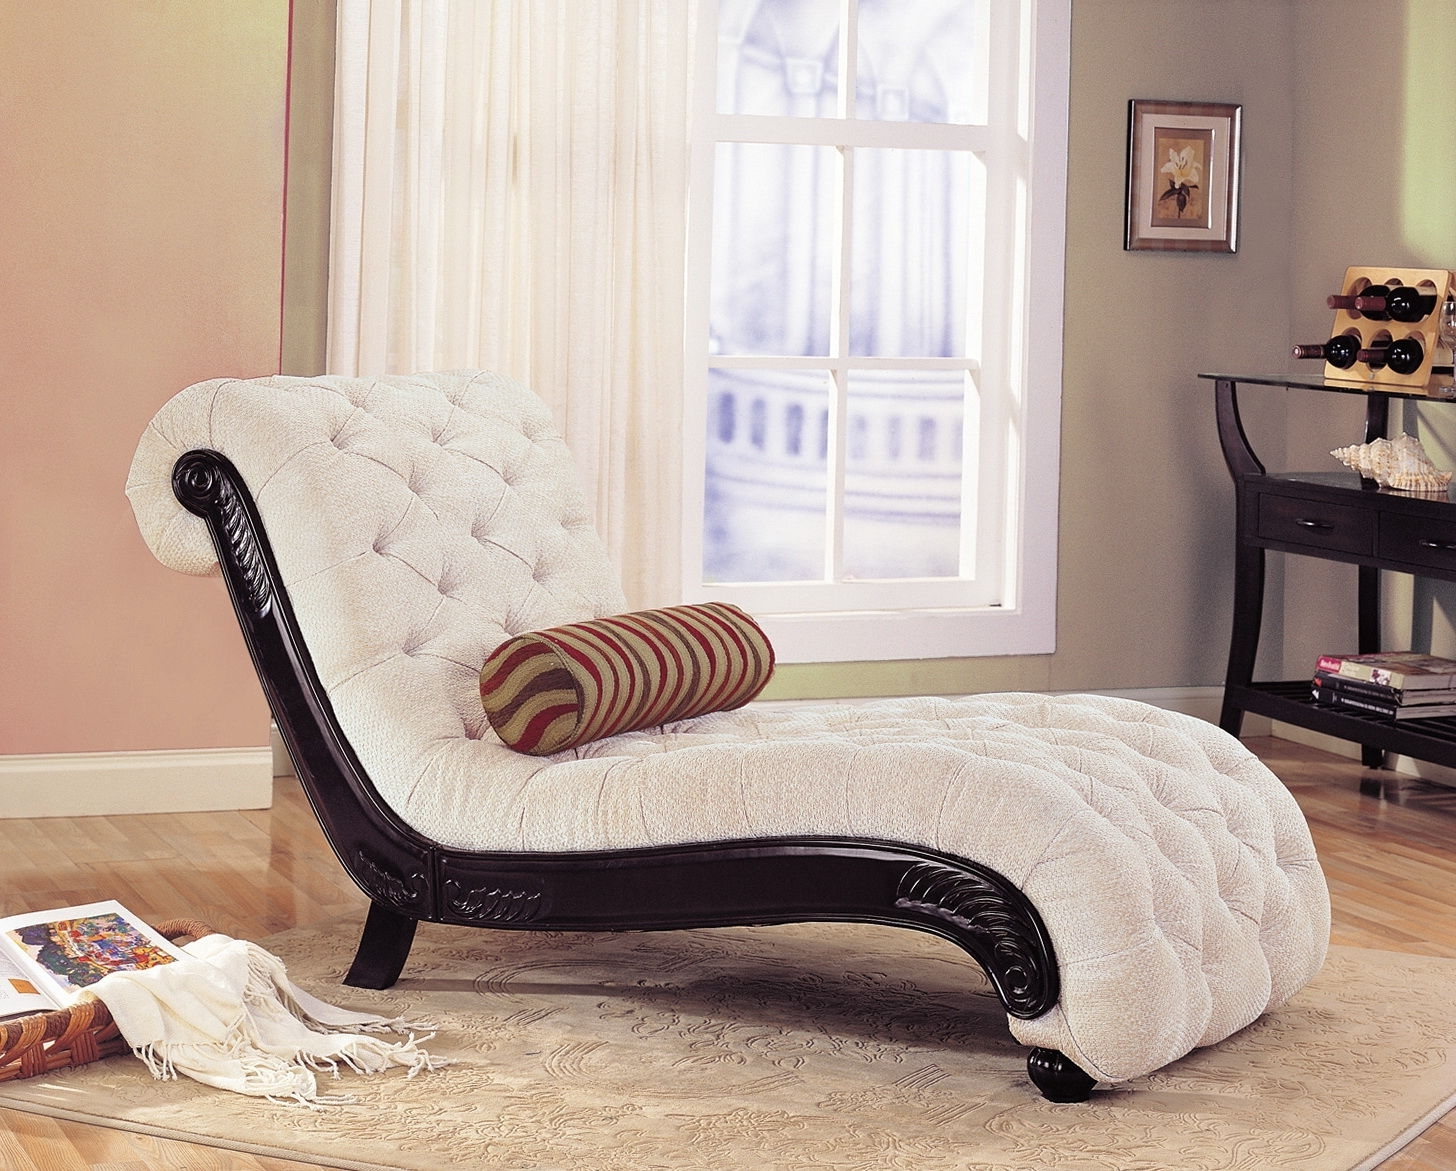 Most Current Chaise Lounge Chair For Bedroom • Lounge Chairs Ideas Pertaining To Chaise Lounge Chairs For Bedroom (View 8 of 15)